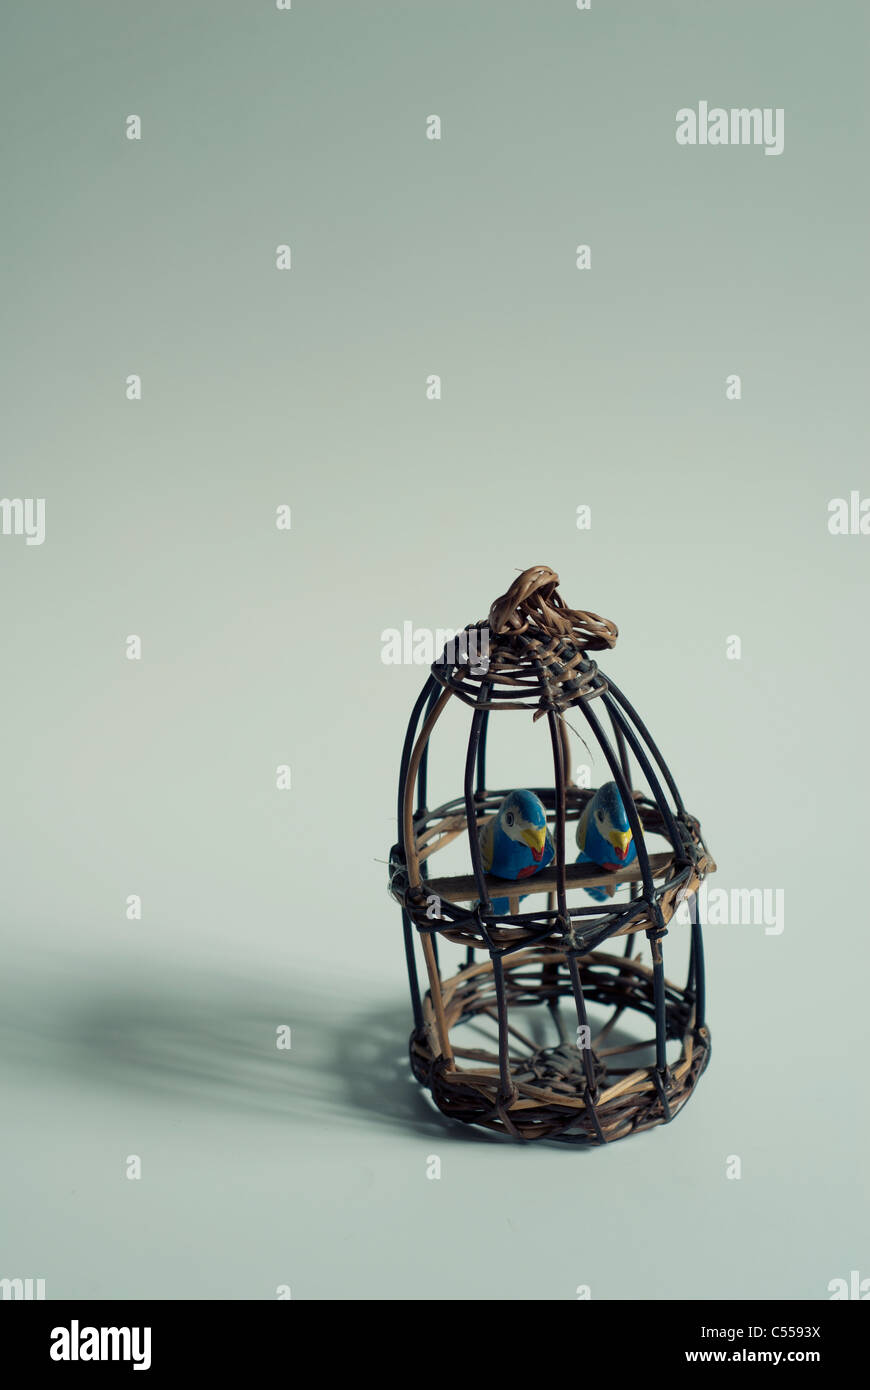 Wooden cage and birds - Stock Image